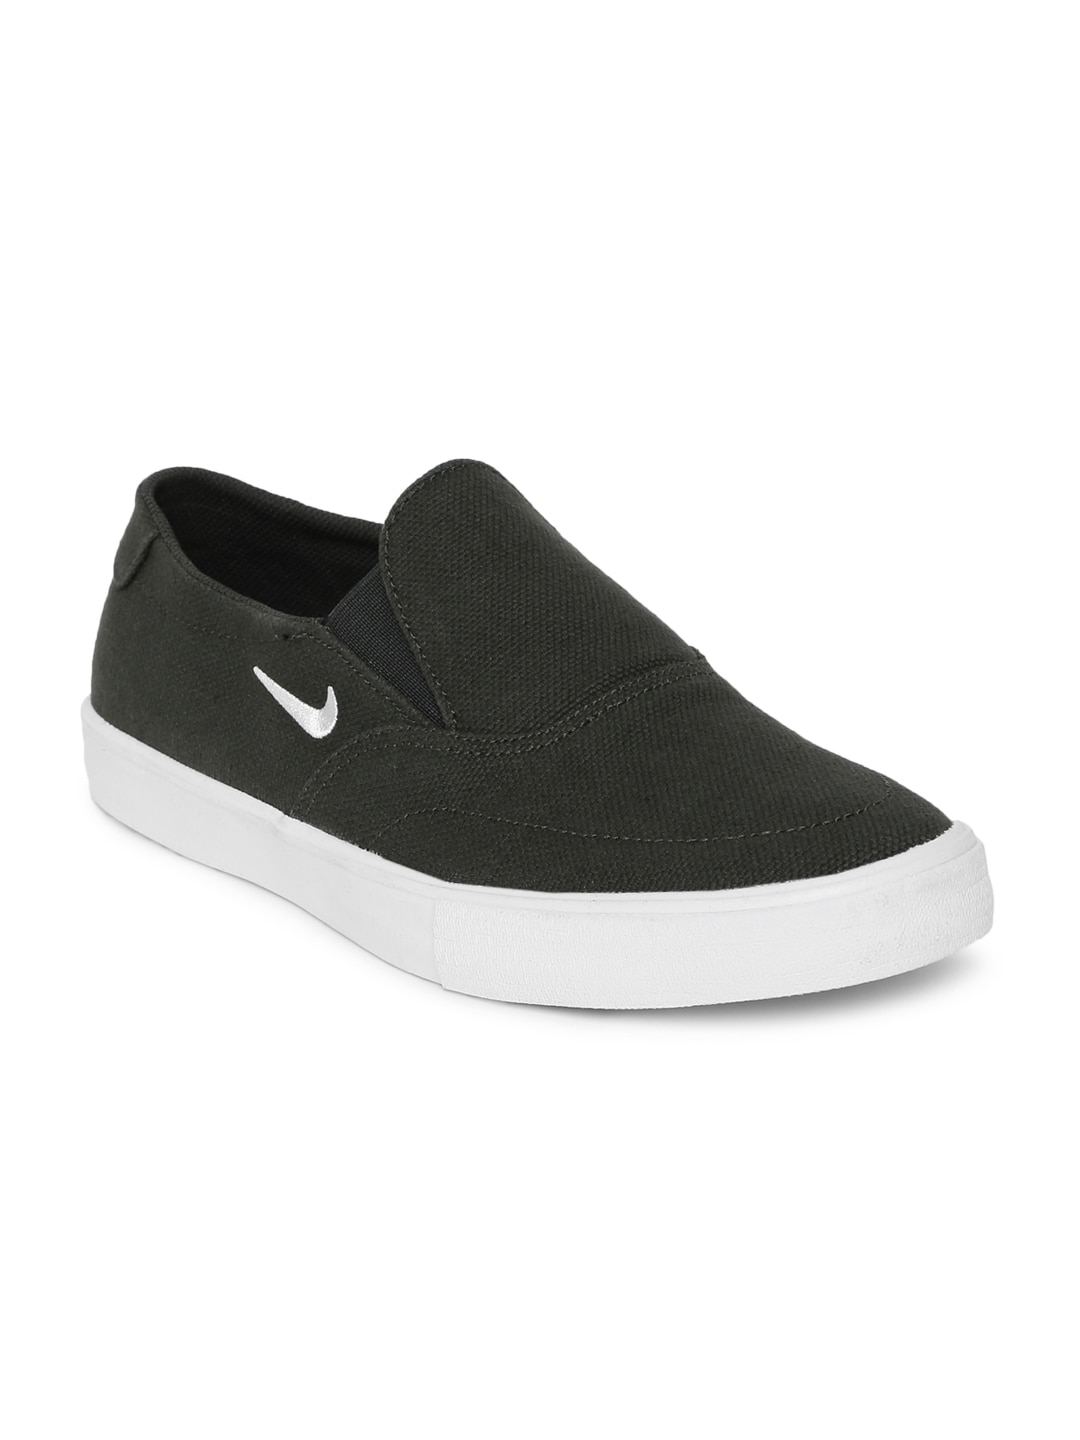 info for 70938 74fc6 Nike Slip On Shoes - Buy Nike Slip On Shoes online in India